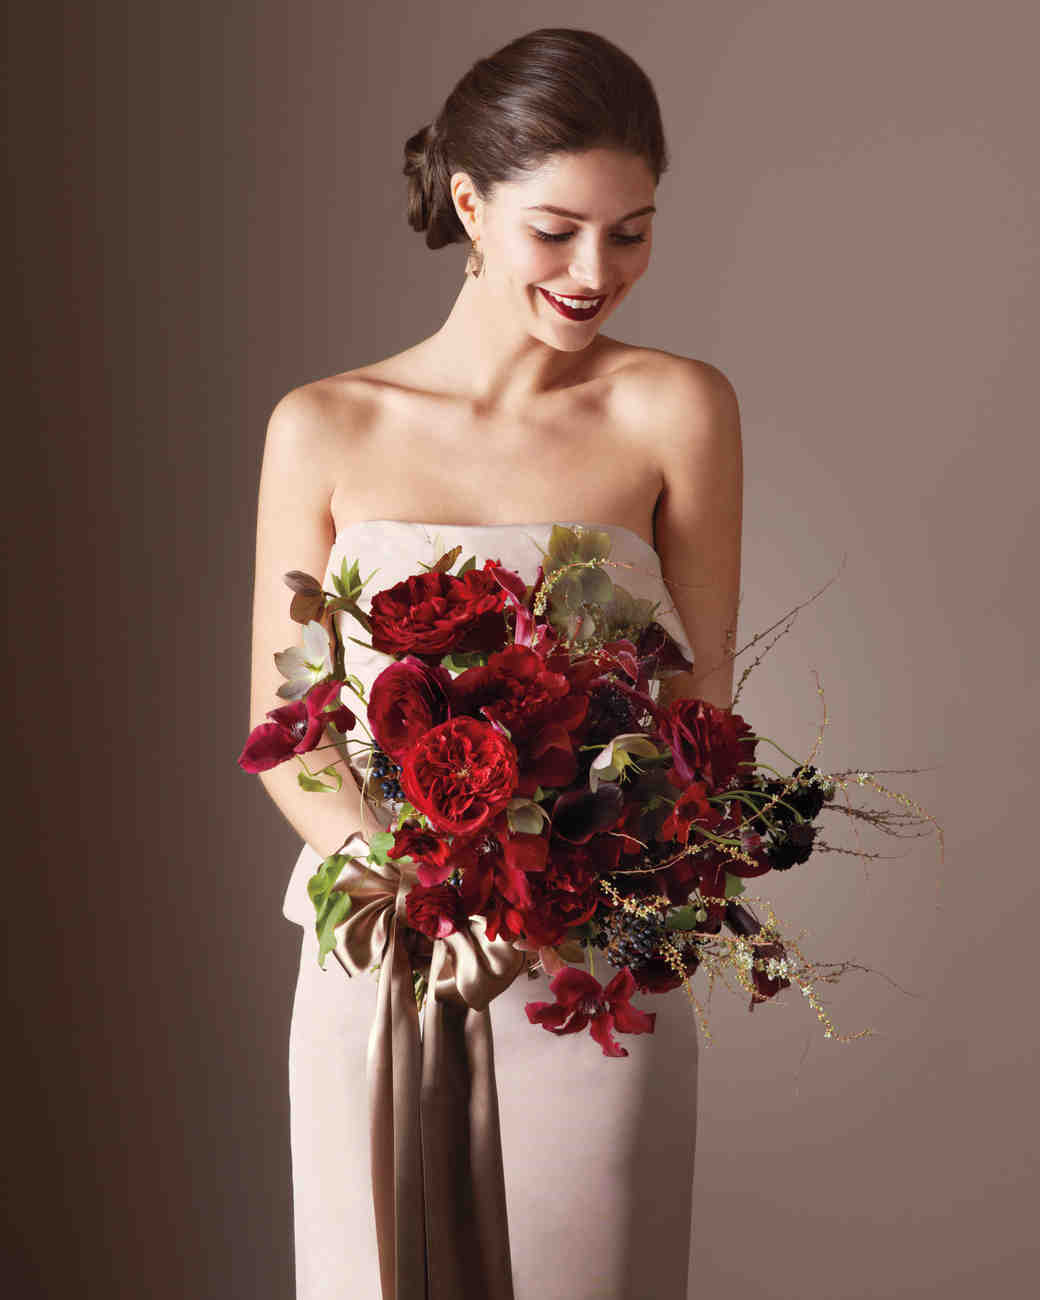 Wine and Greige Is a Color Combination That Can Make Wedding-Day ...